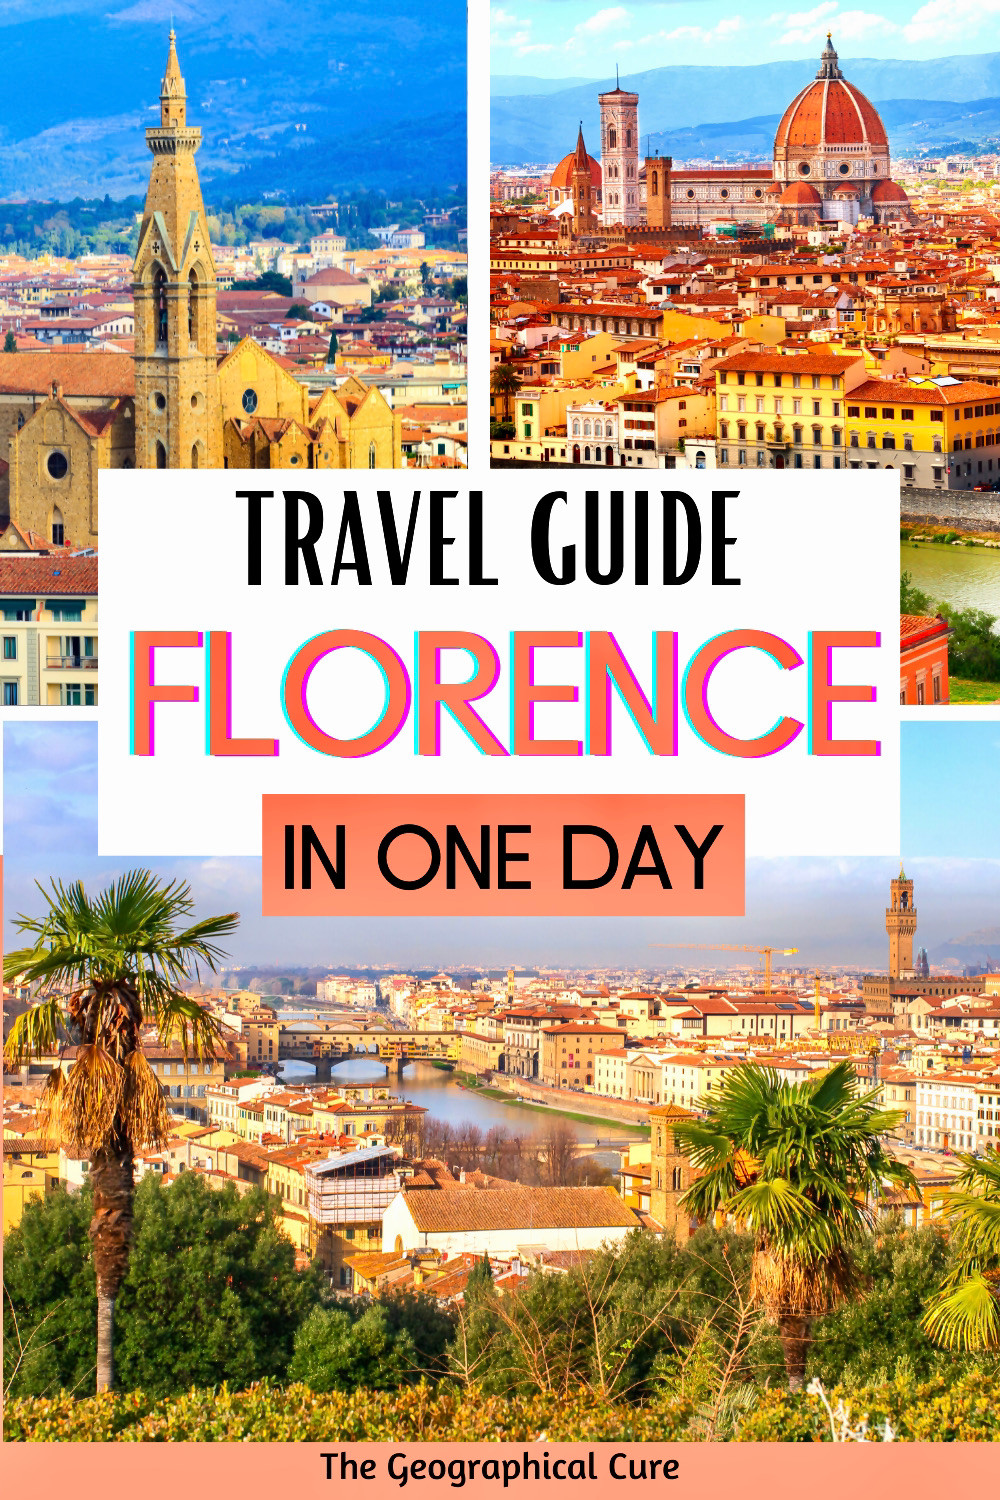 an epic one day itinerary for Florence, with all the city's must see sites